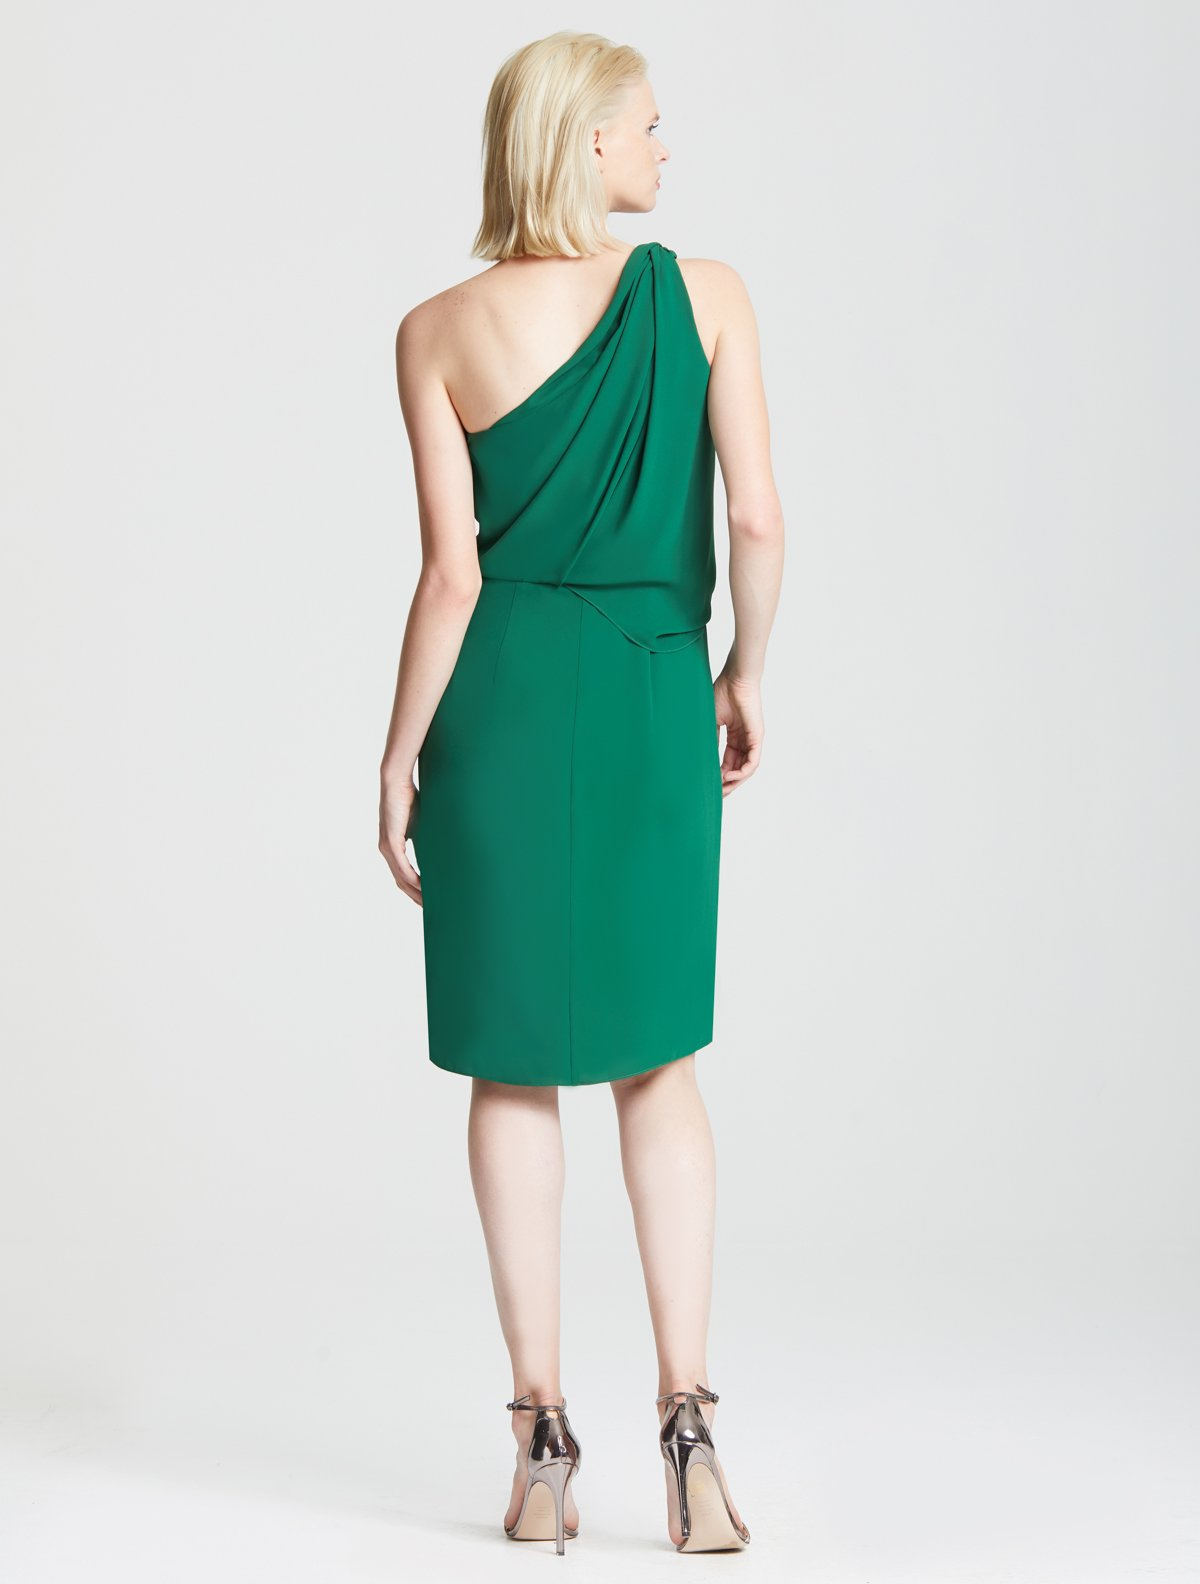 Braided Strap Dress - Halston